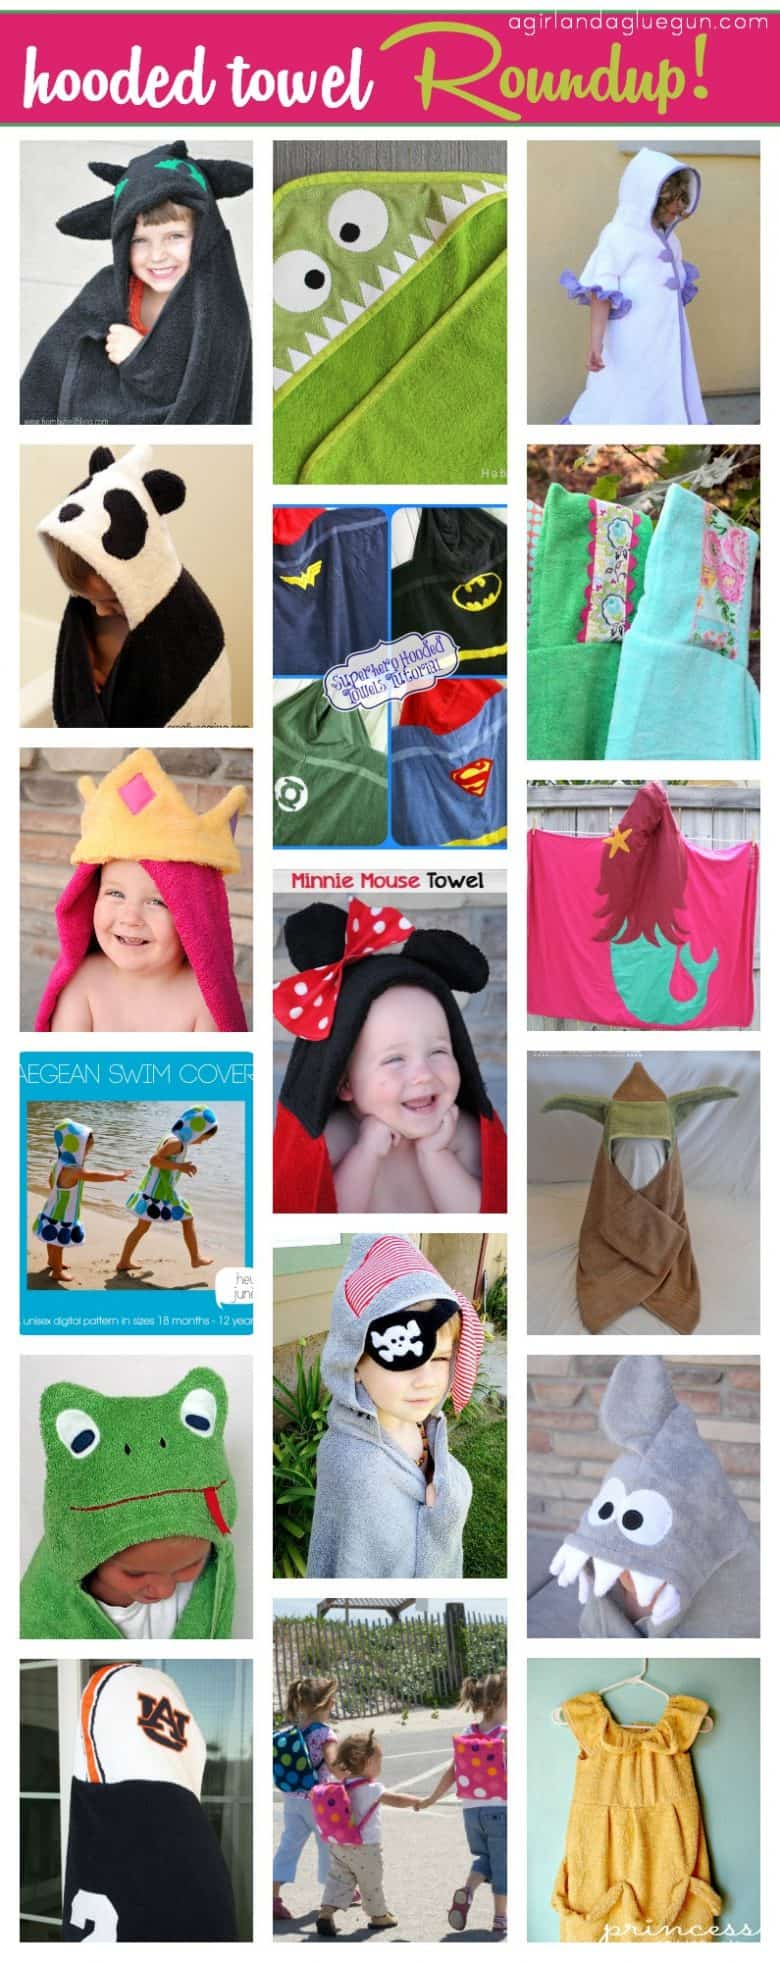 hooded towel roundup